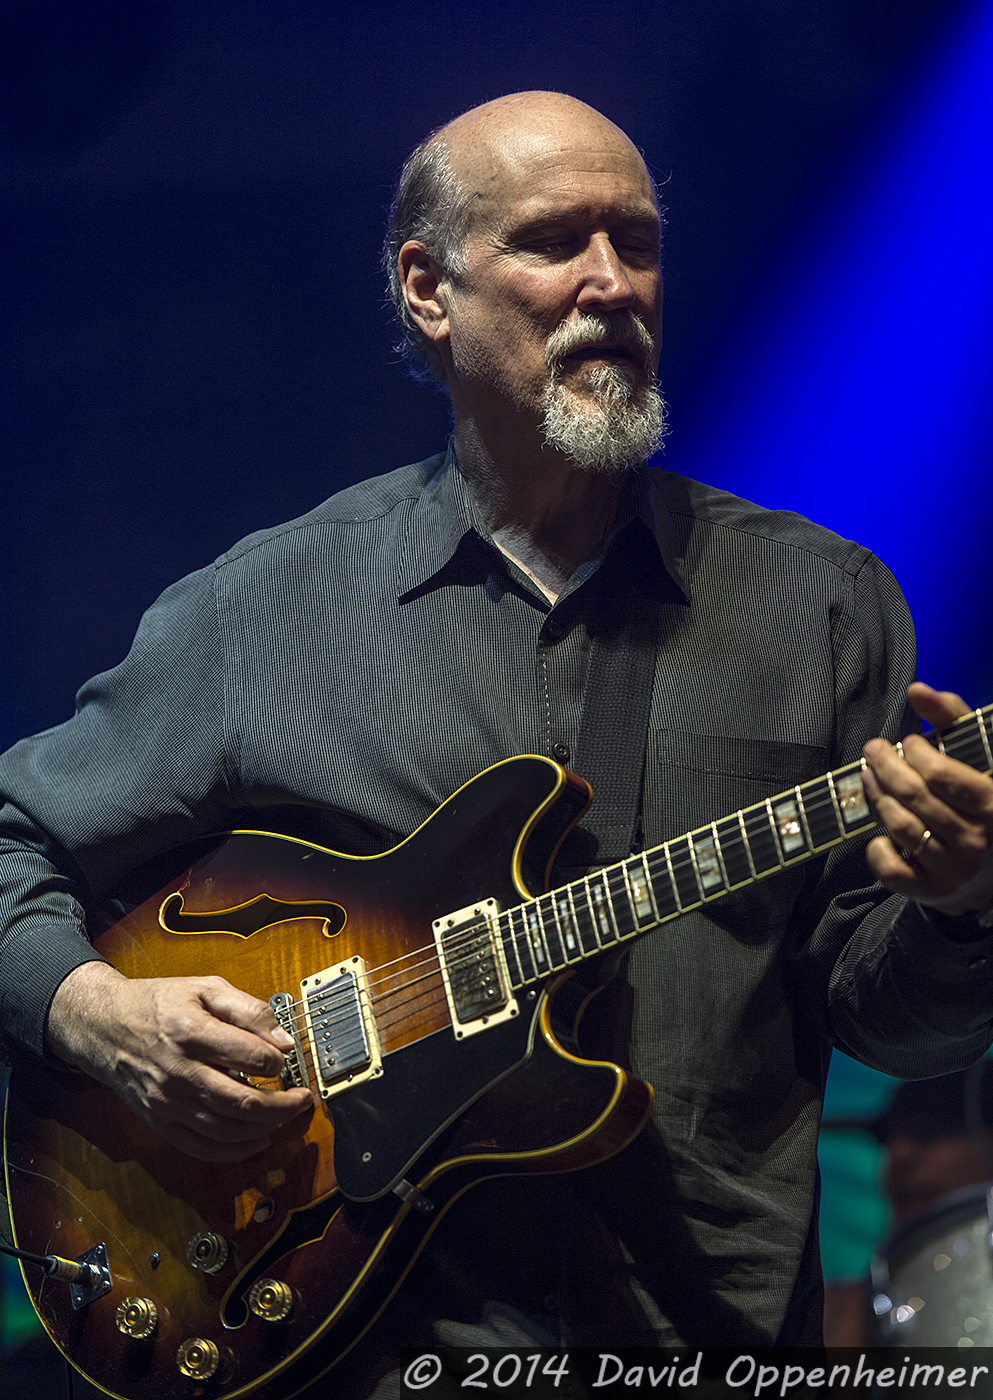 John Scofield with Gov't Mule